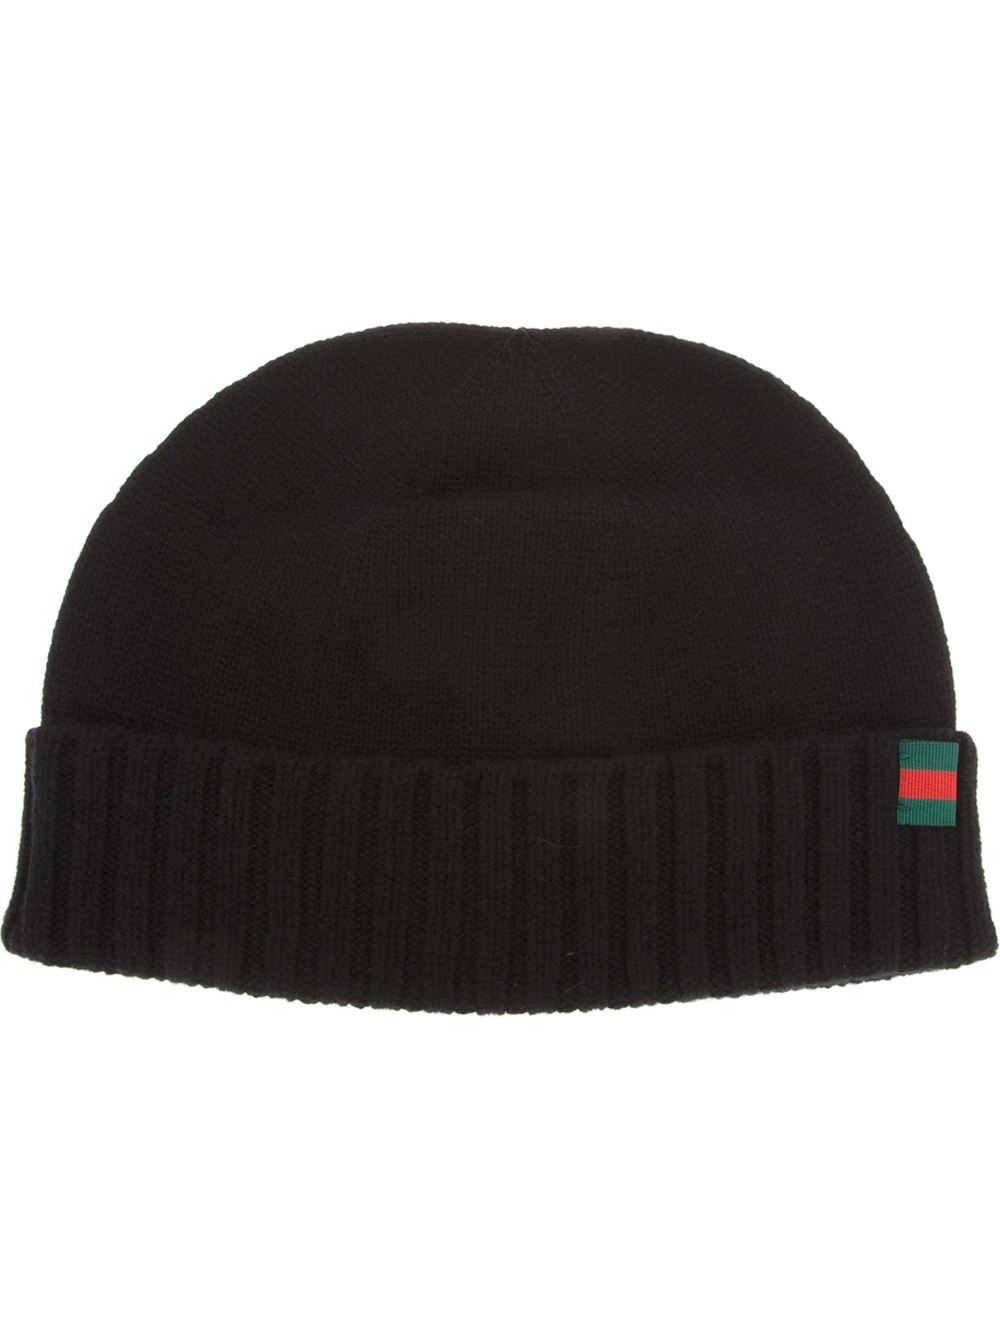 770b3d97d30b7 Gucci Beanie Hat in Black for Men